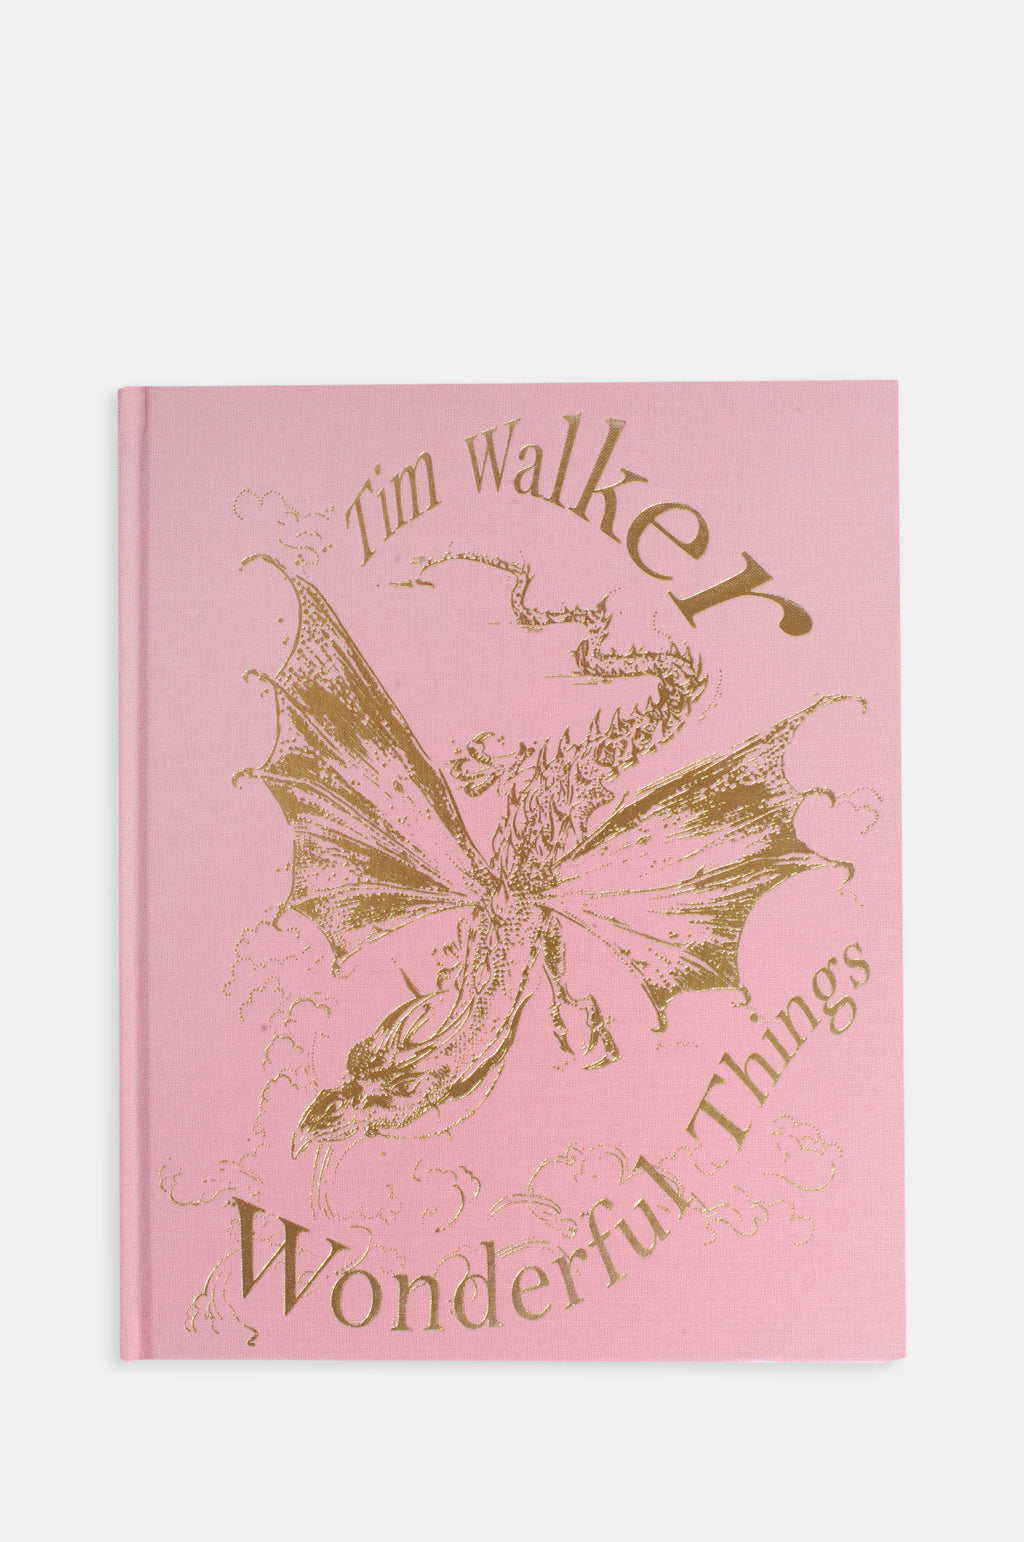 Tim Walker: Wonderful Things